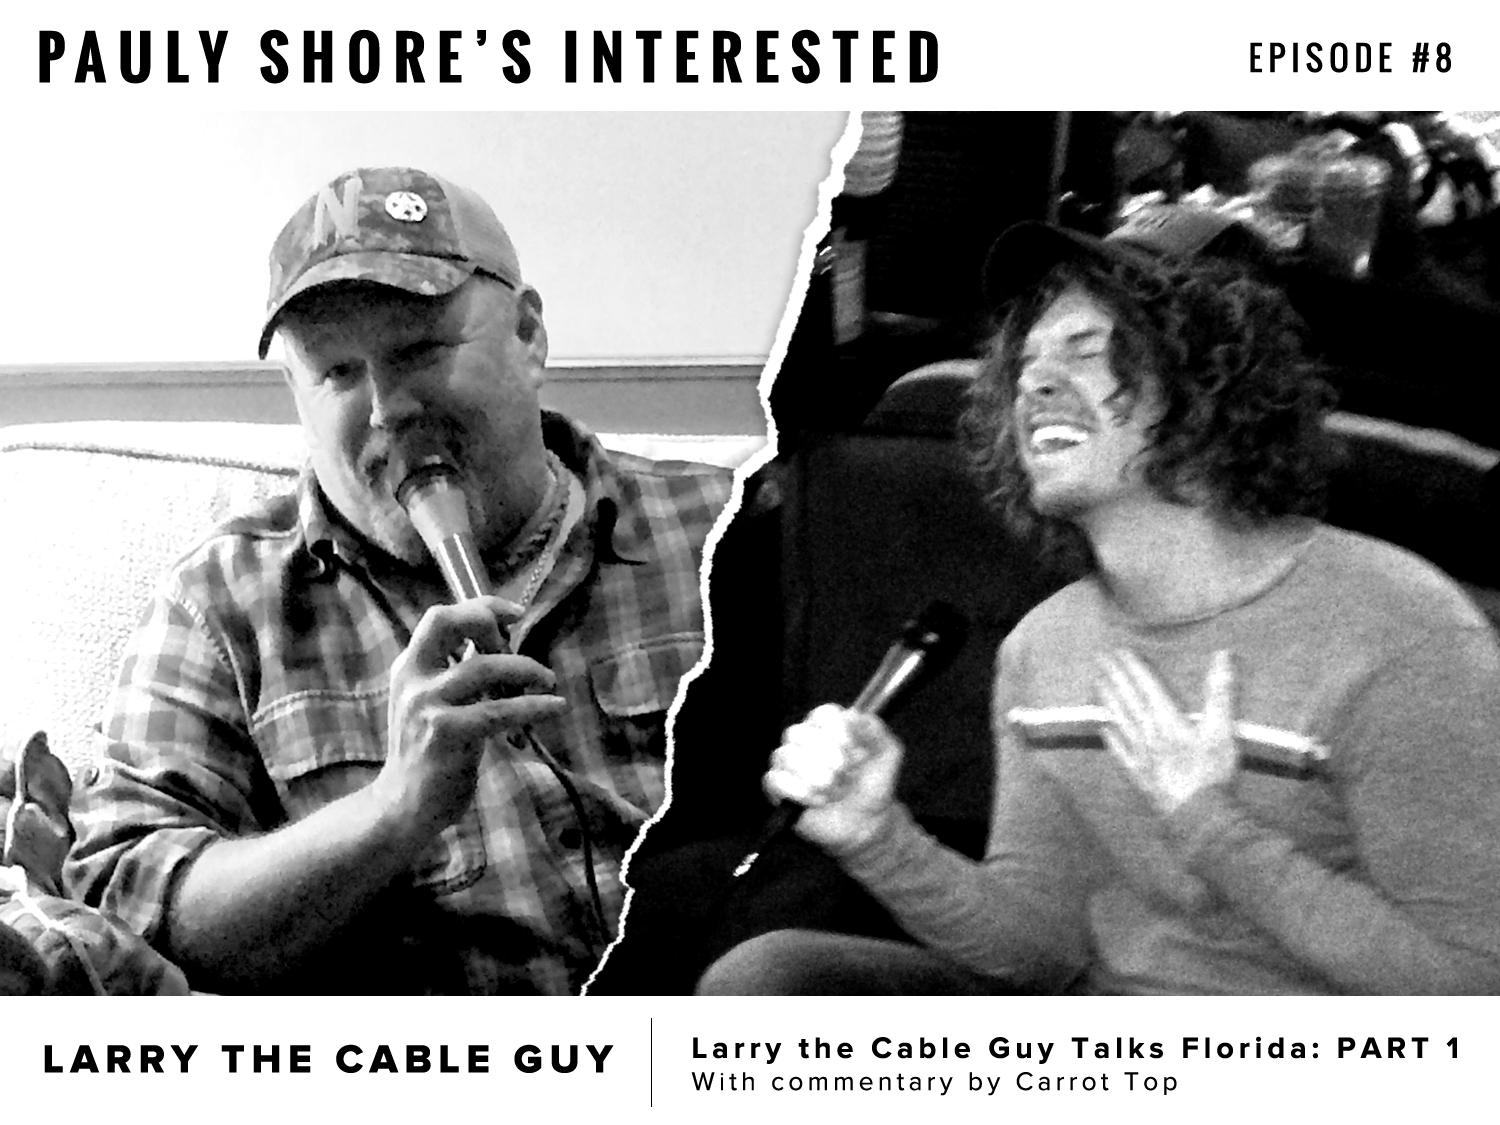 Interested Episode 8 - Carrot Top talks Florida with commentary by Larry the Cable Guy -